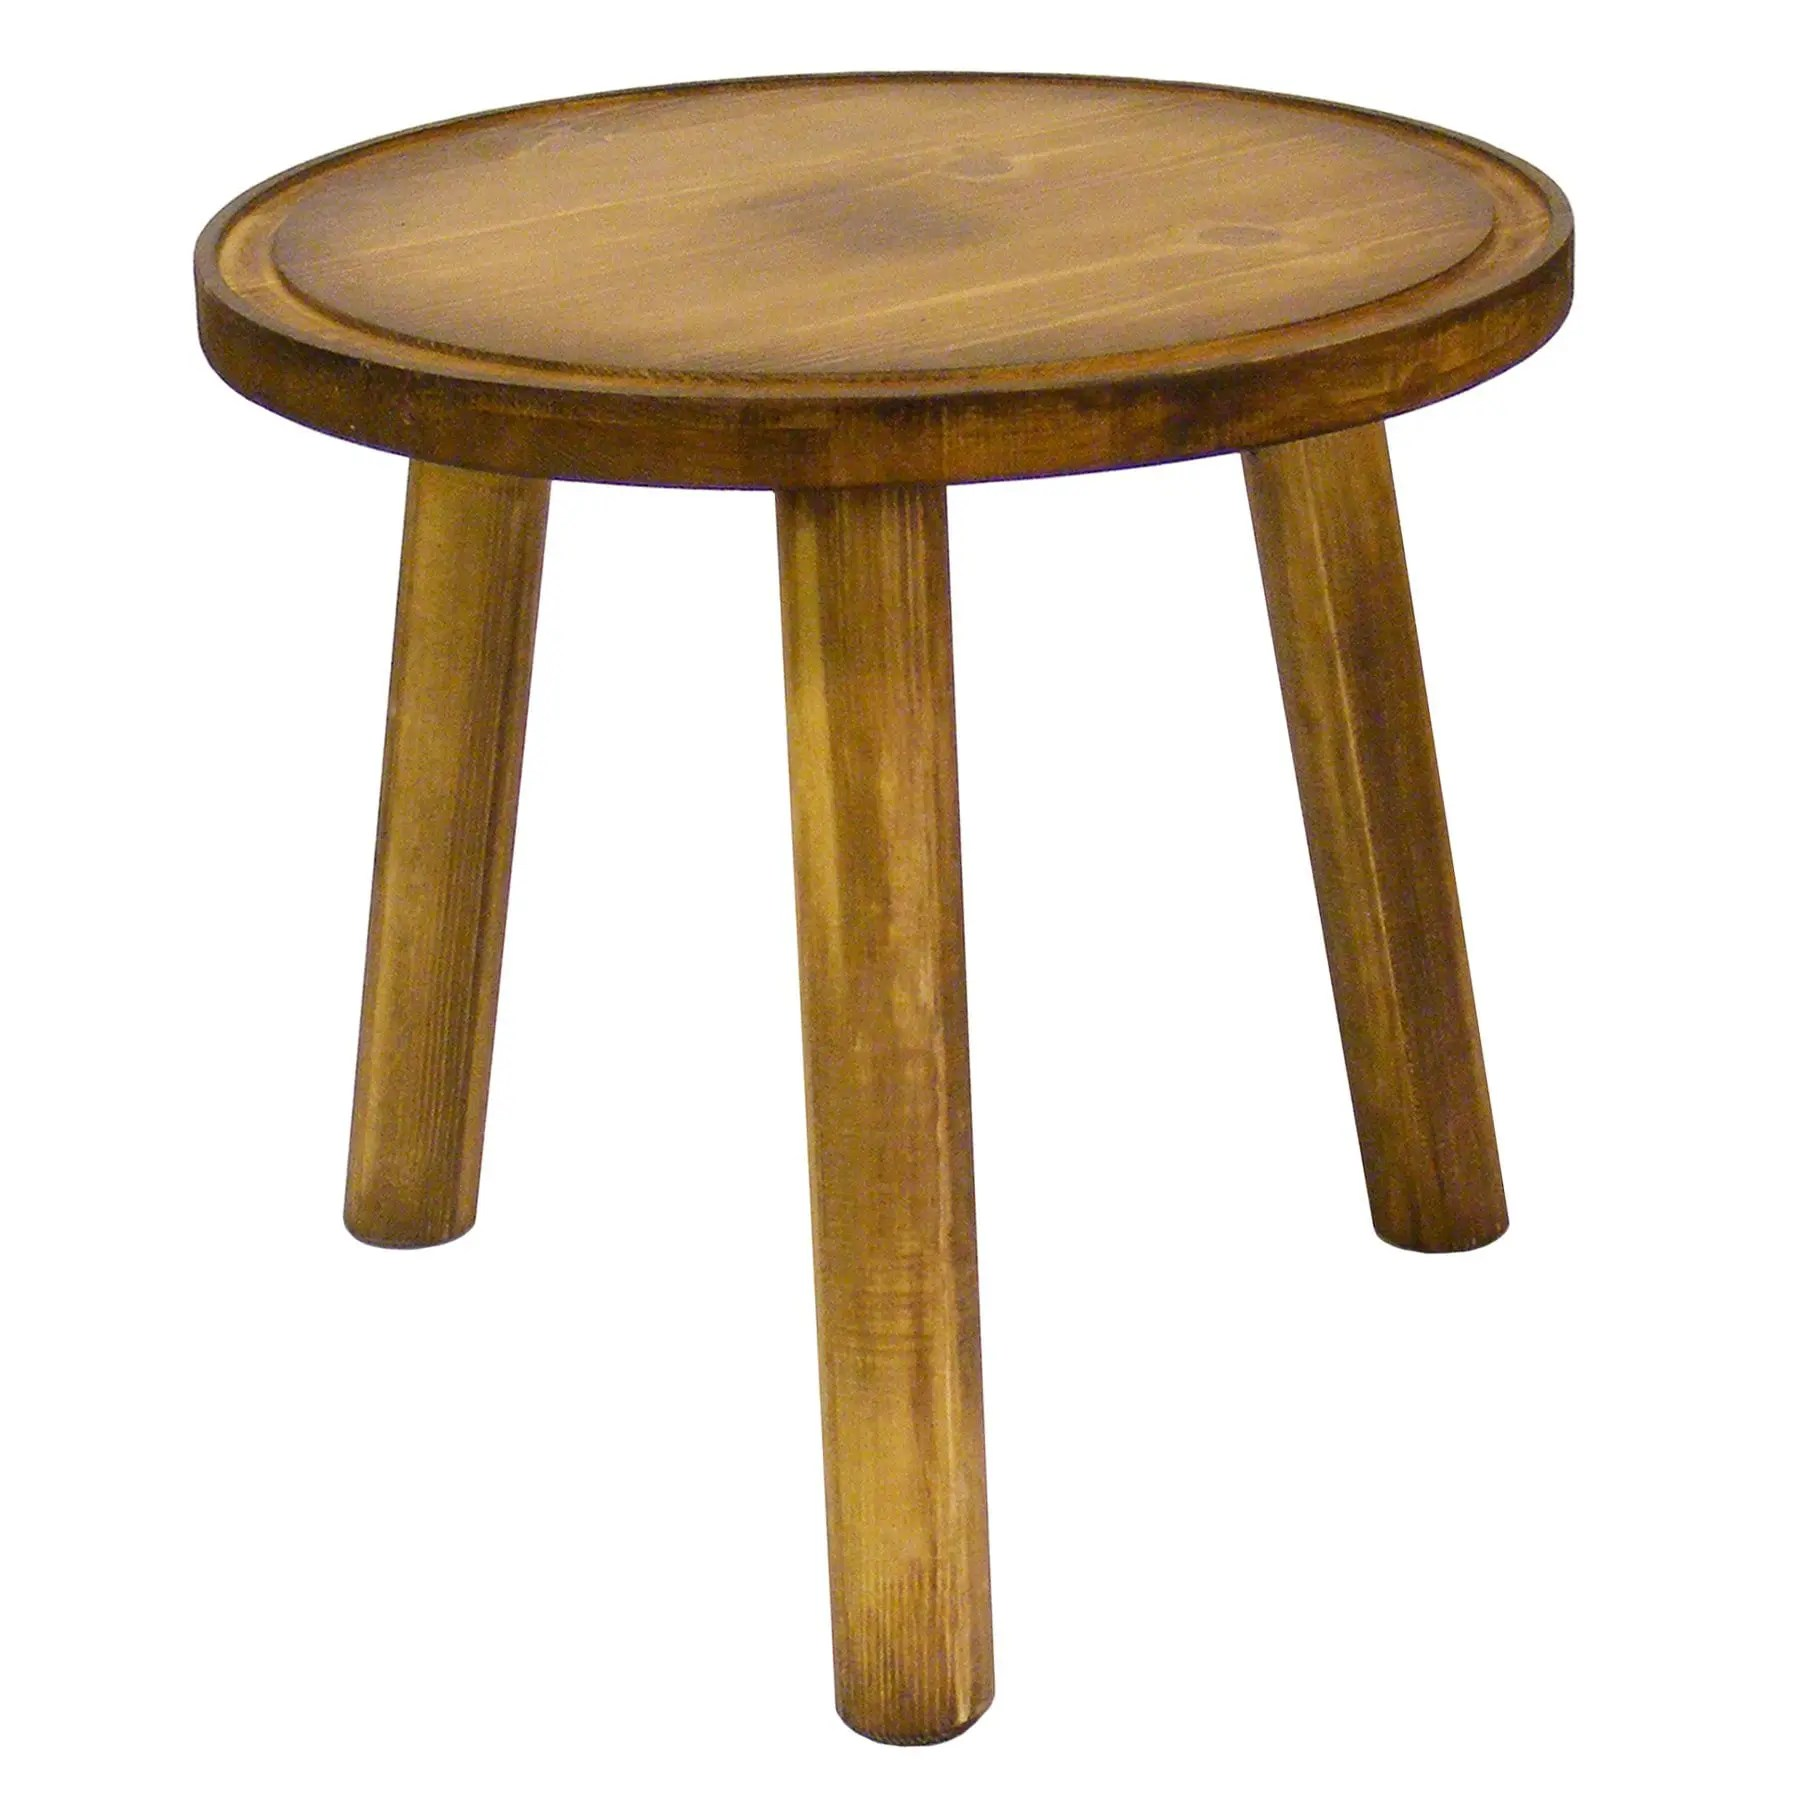 Rustic Stools Kitchens Rustic Pine Milking Stool 290dx210 A Great Display For